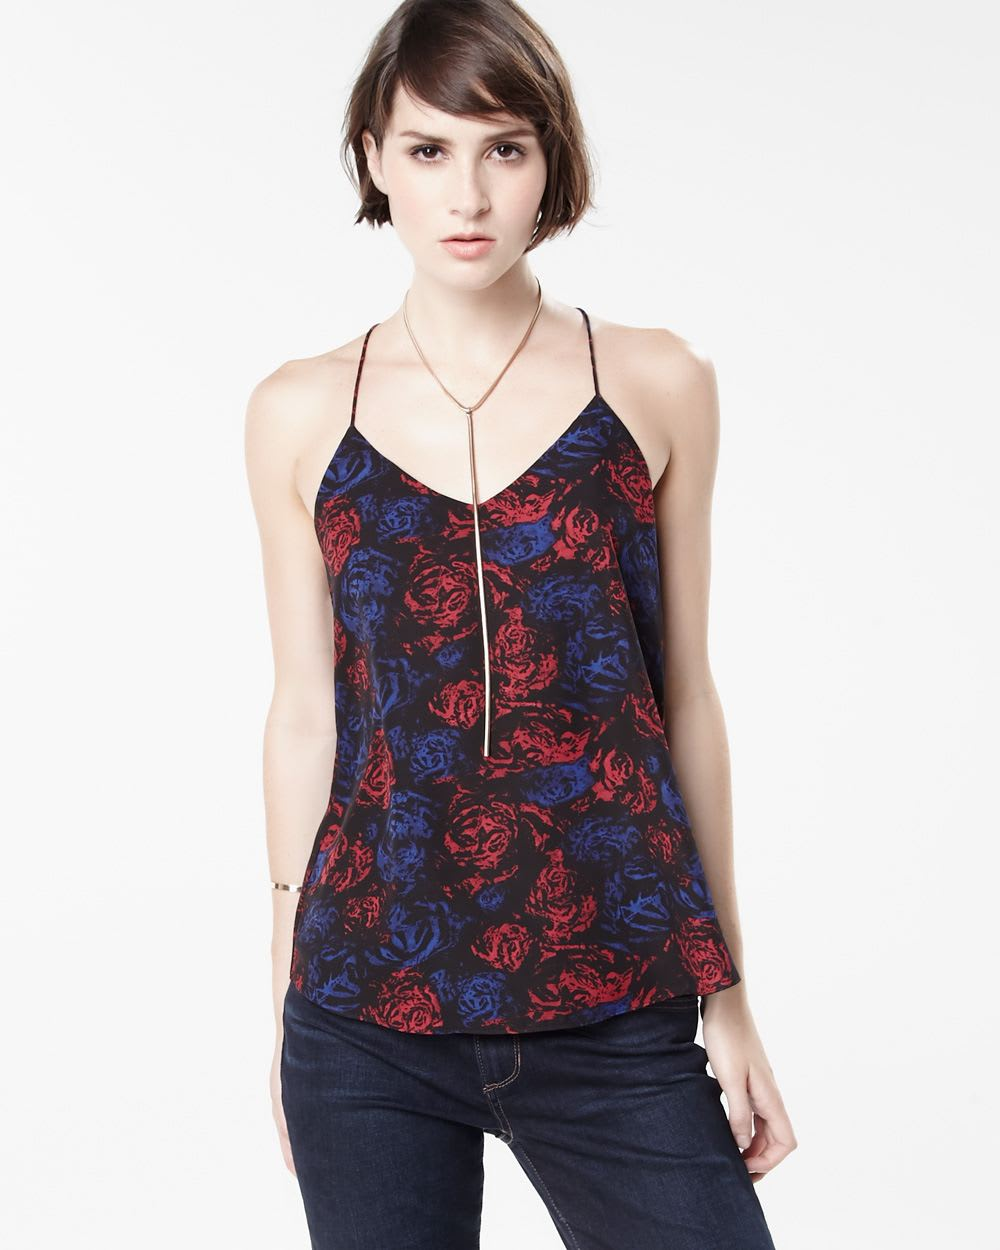 Shop the Women's V-Neck Camisole at hereaupy06.gq and see the entire selection of Women's Tops. Free Shipping Available.